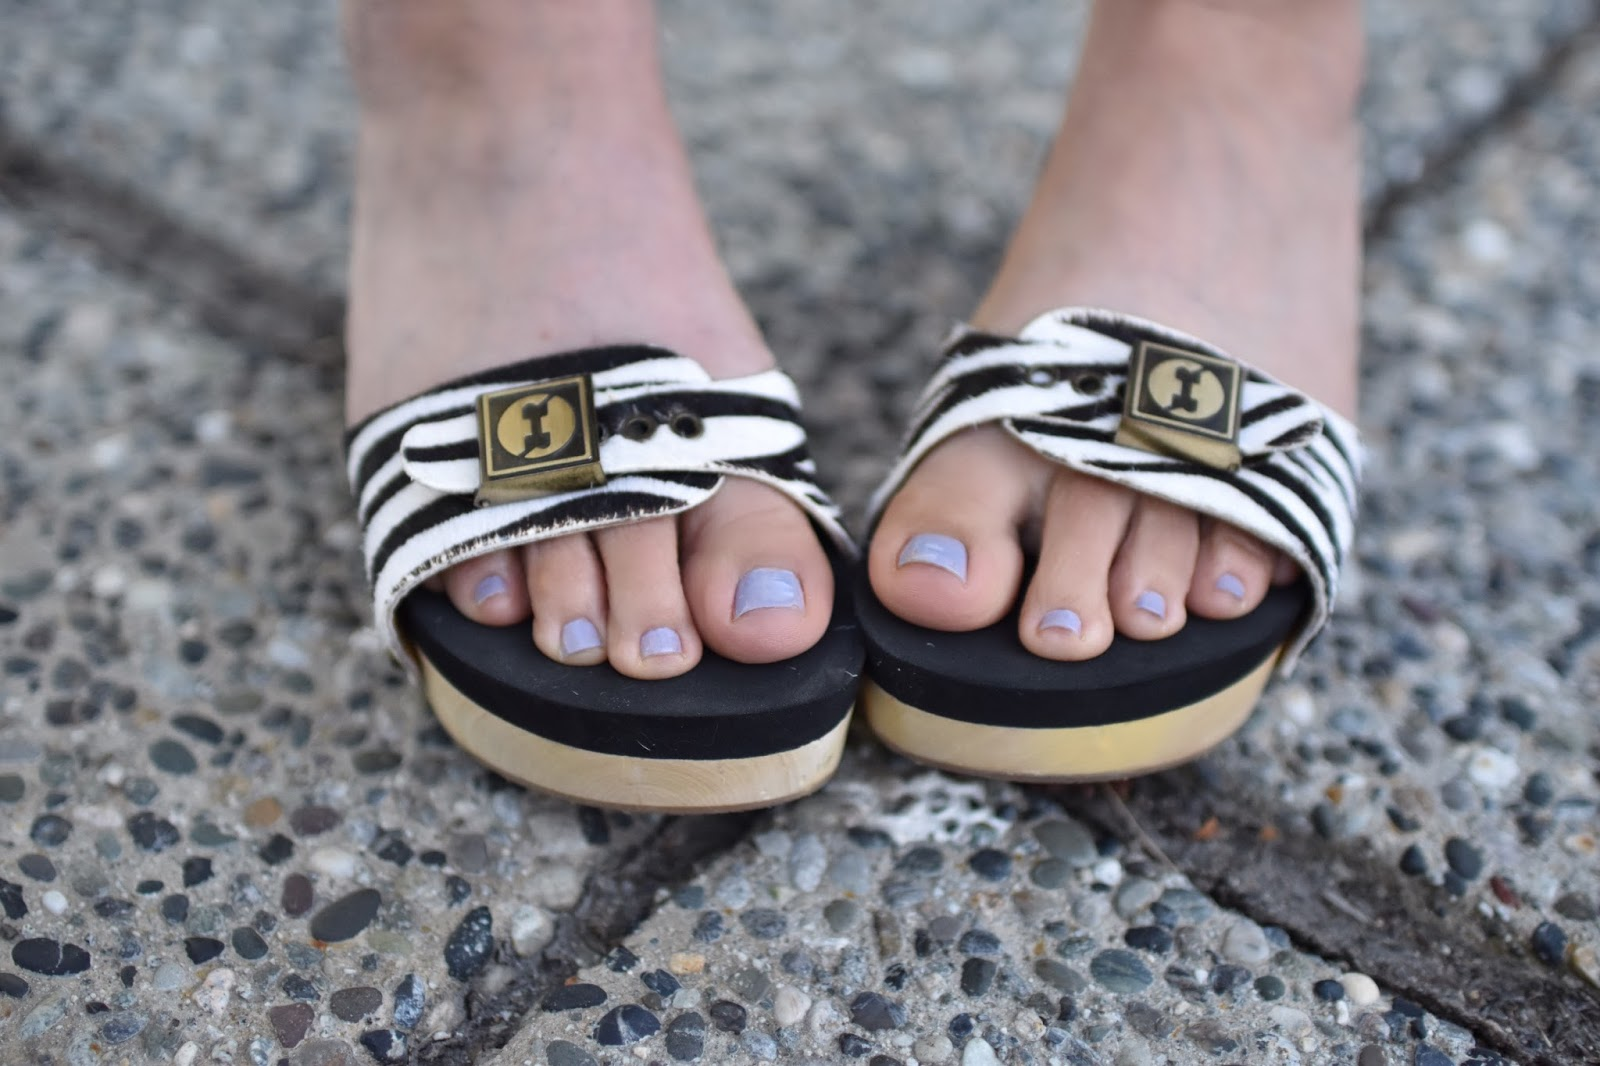 Monika Faulkner personal style inspiration - Floggs sandals